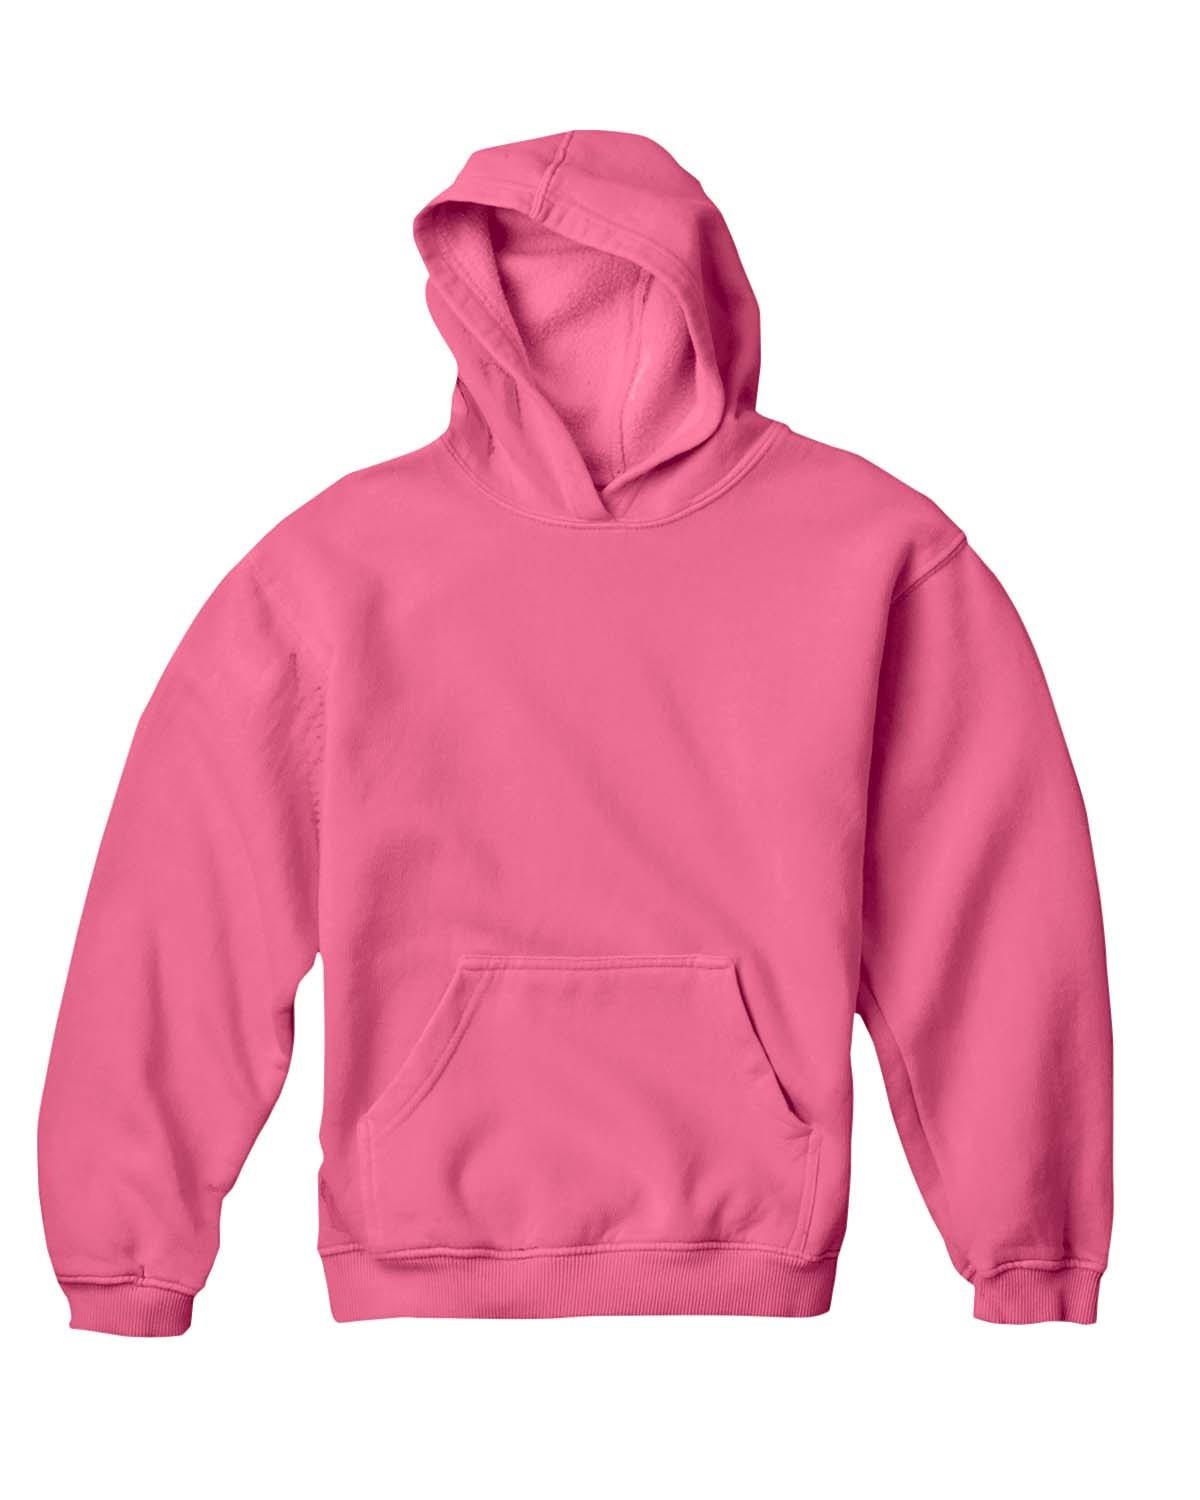 C8755 Comfort Colors Drop Ship CRUNCHBERRY